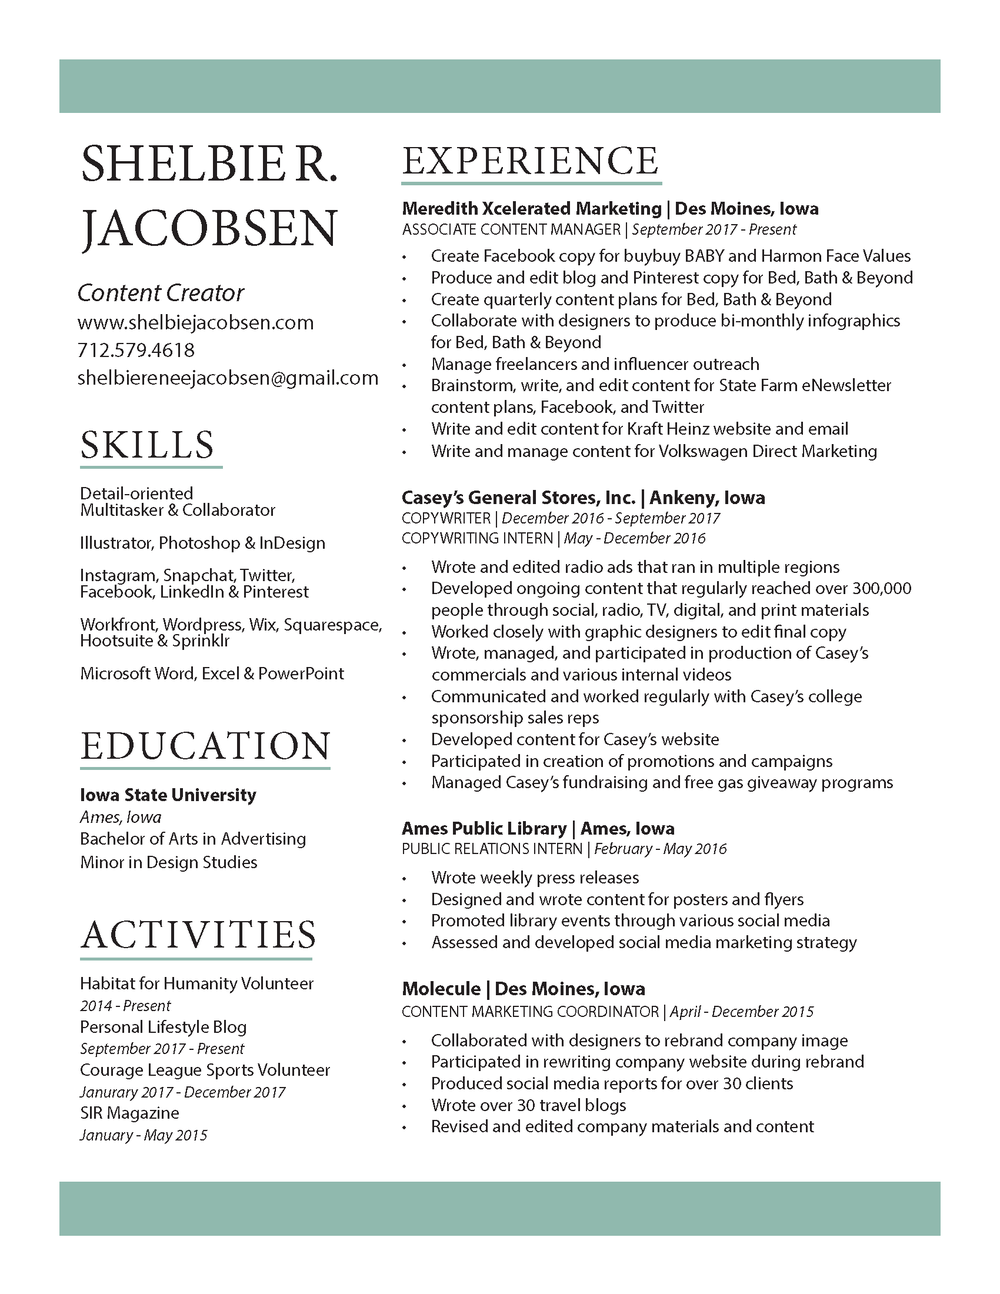 Resume Shelbie Jacobsen